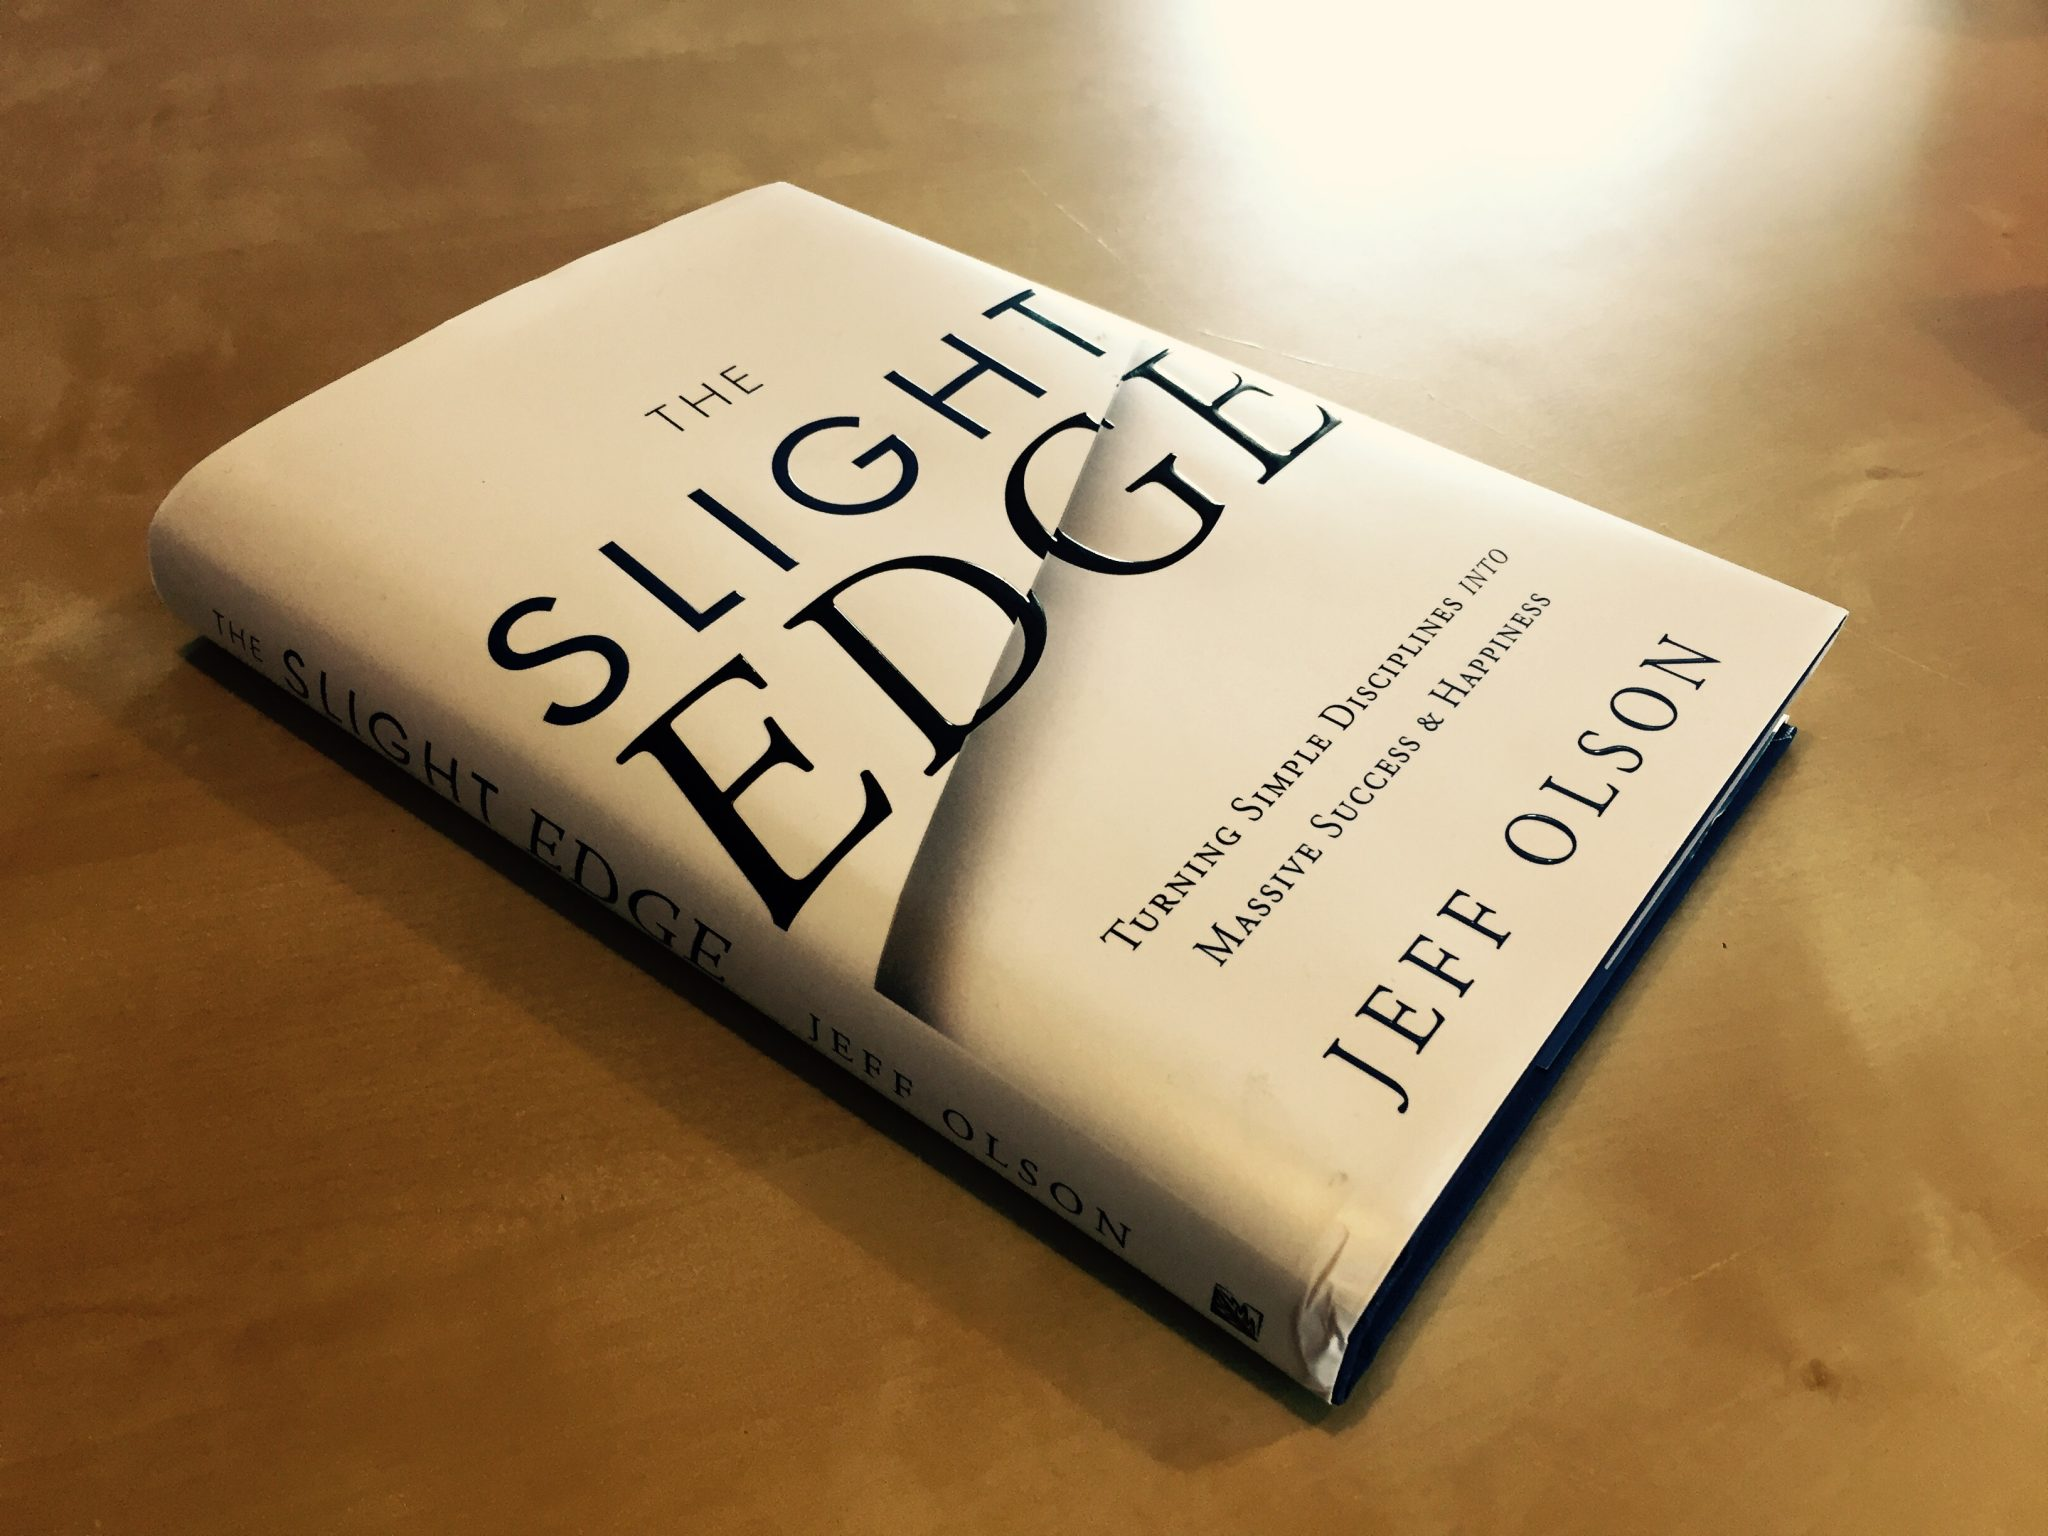 Review: The Slight Edge, by Jeff Olson